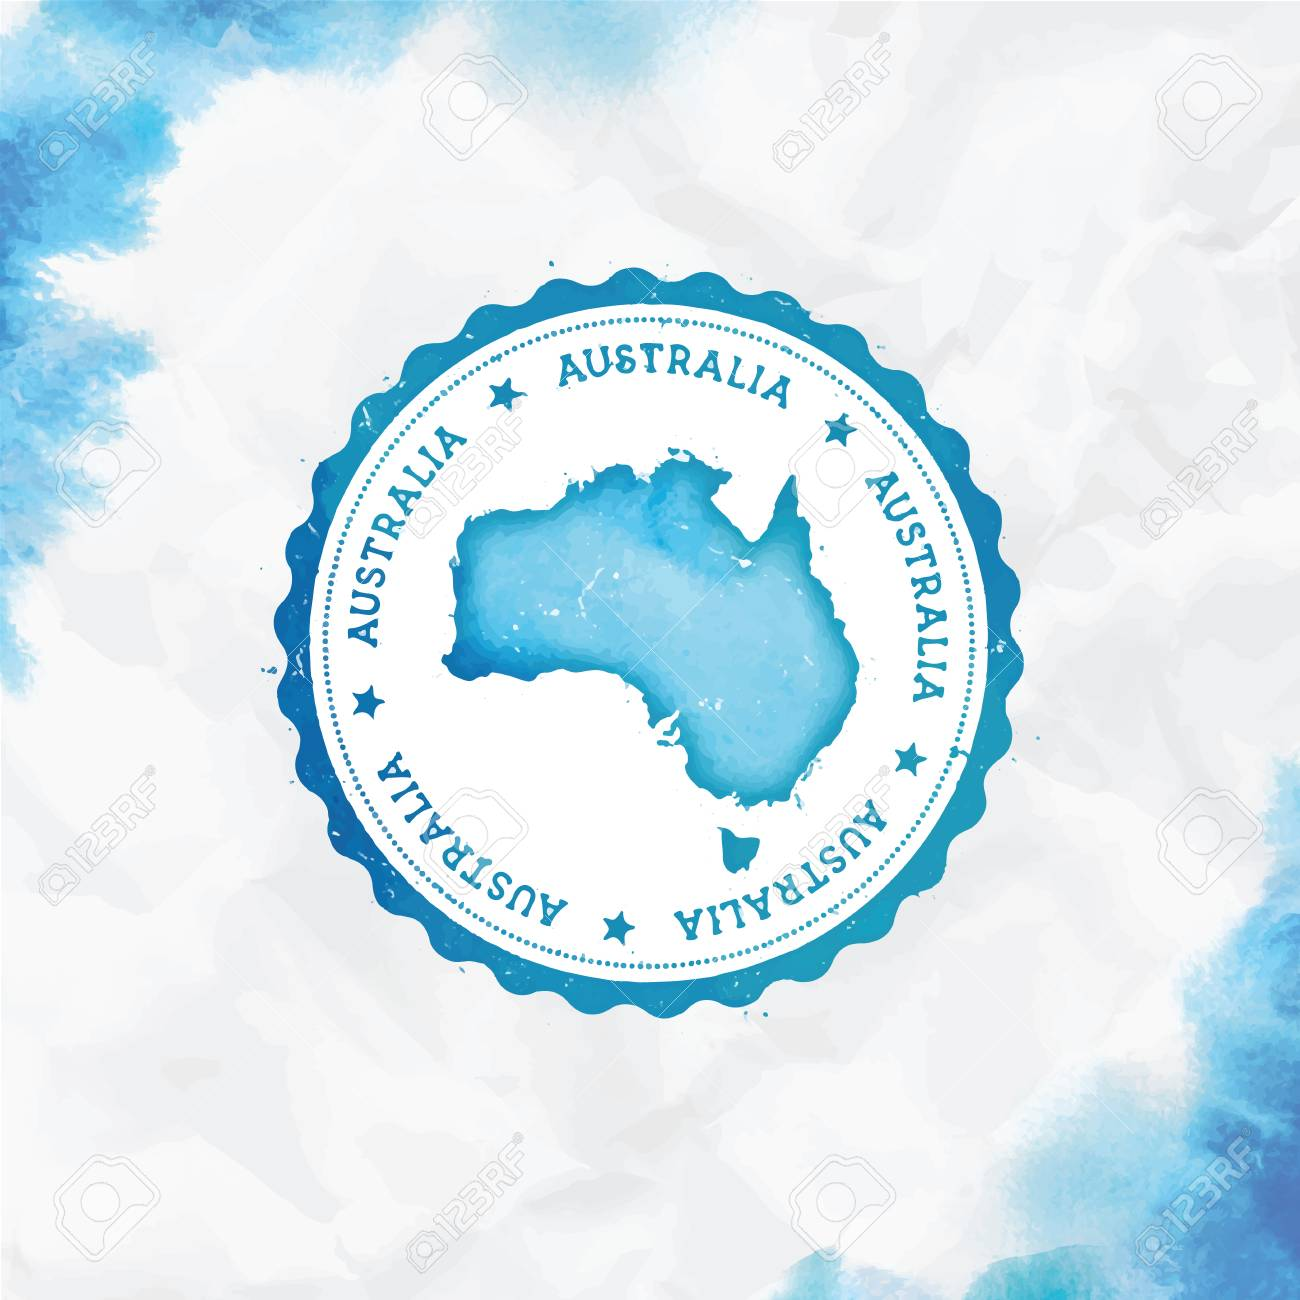 Country Map Of Australia.Australia Watercolor Round Rubber Stamp With Country Map Turquoise